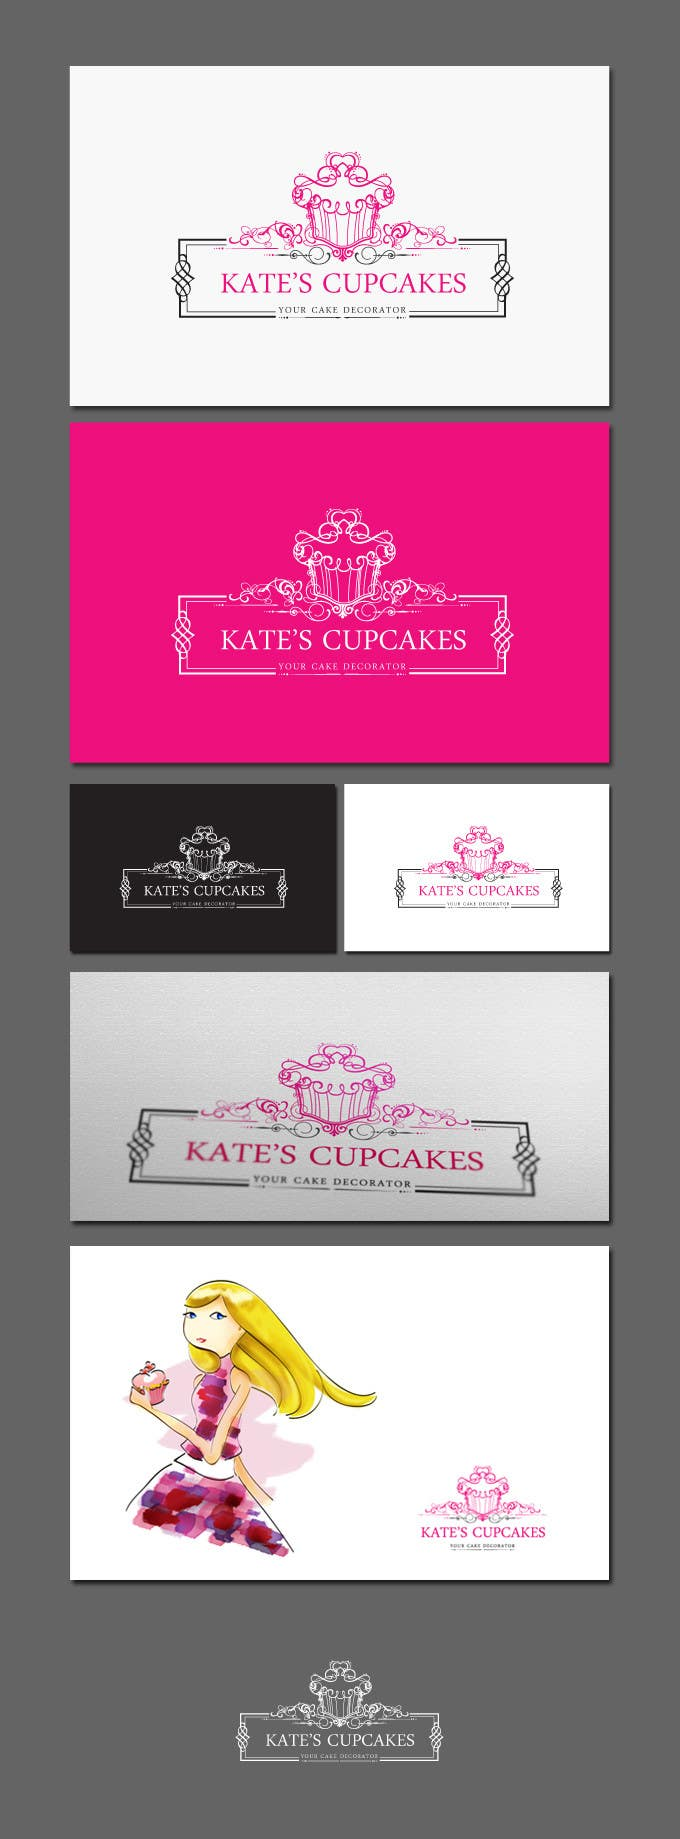 Konkurrenceindlæg #                                        71                                      for                                         Logo Design for Kate's Cupcakes